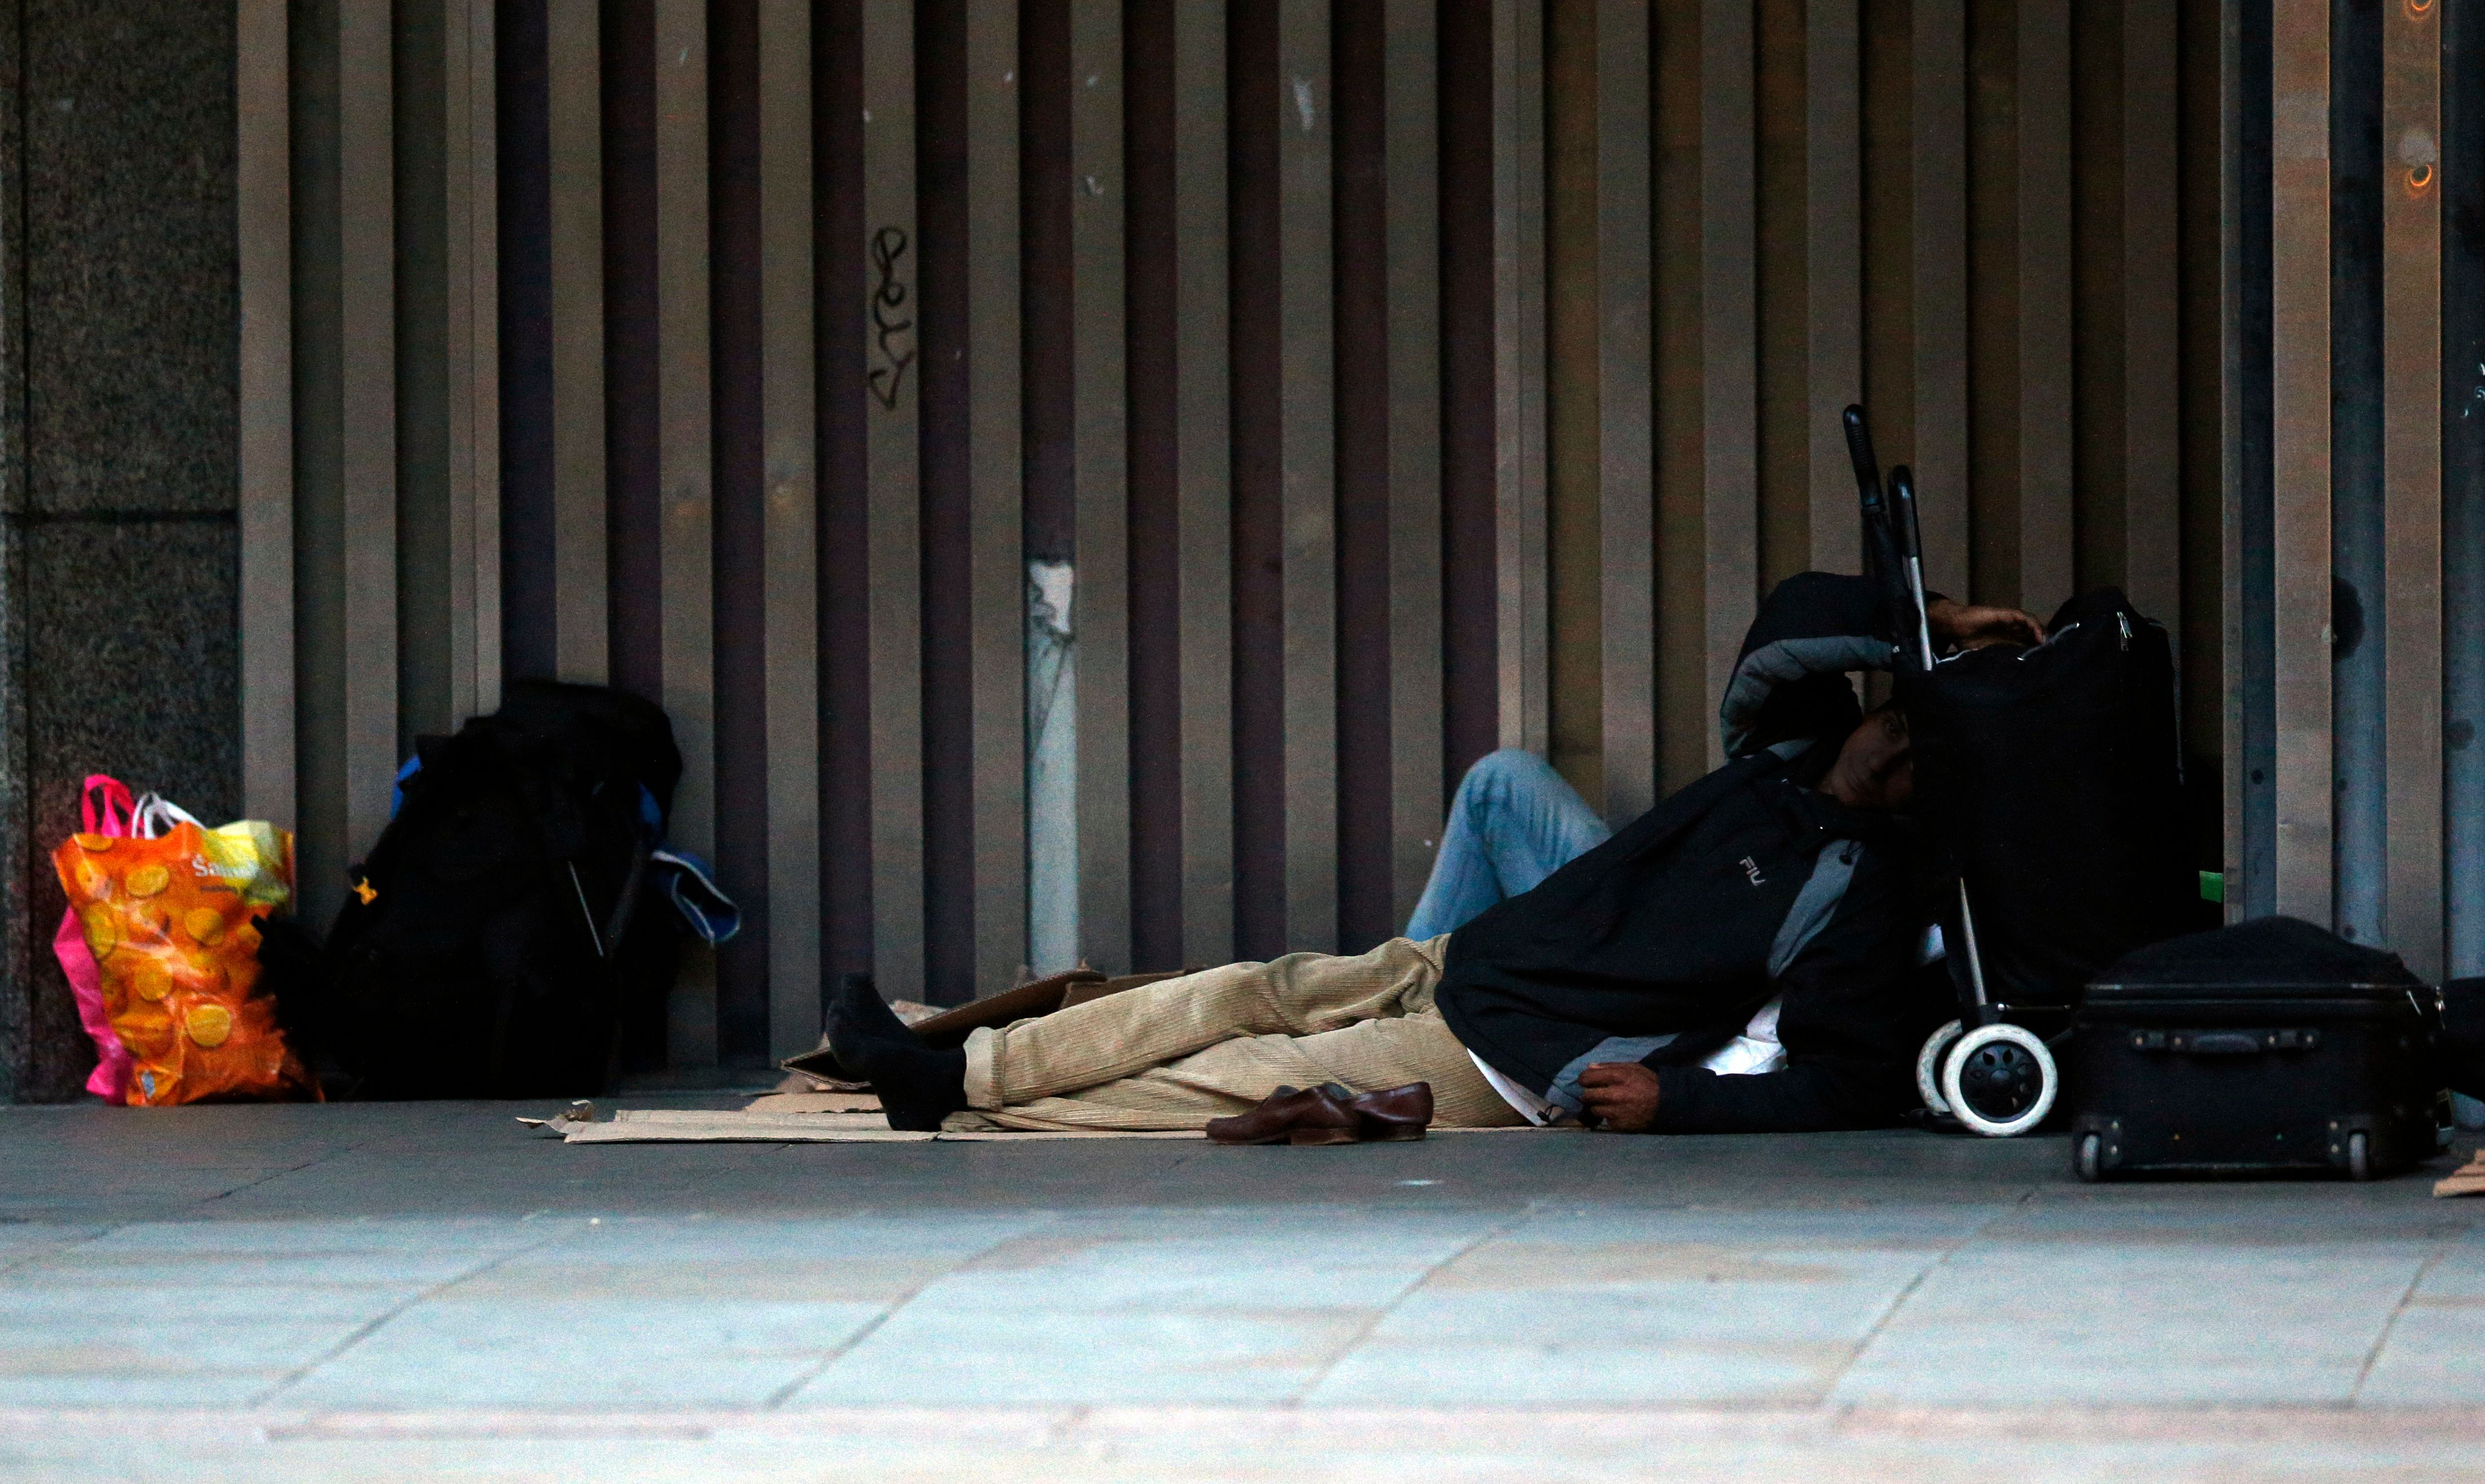 <strong>A person sleeps rough in Westminster</strong>